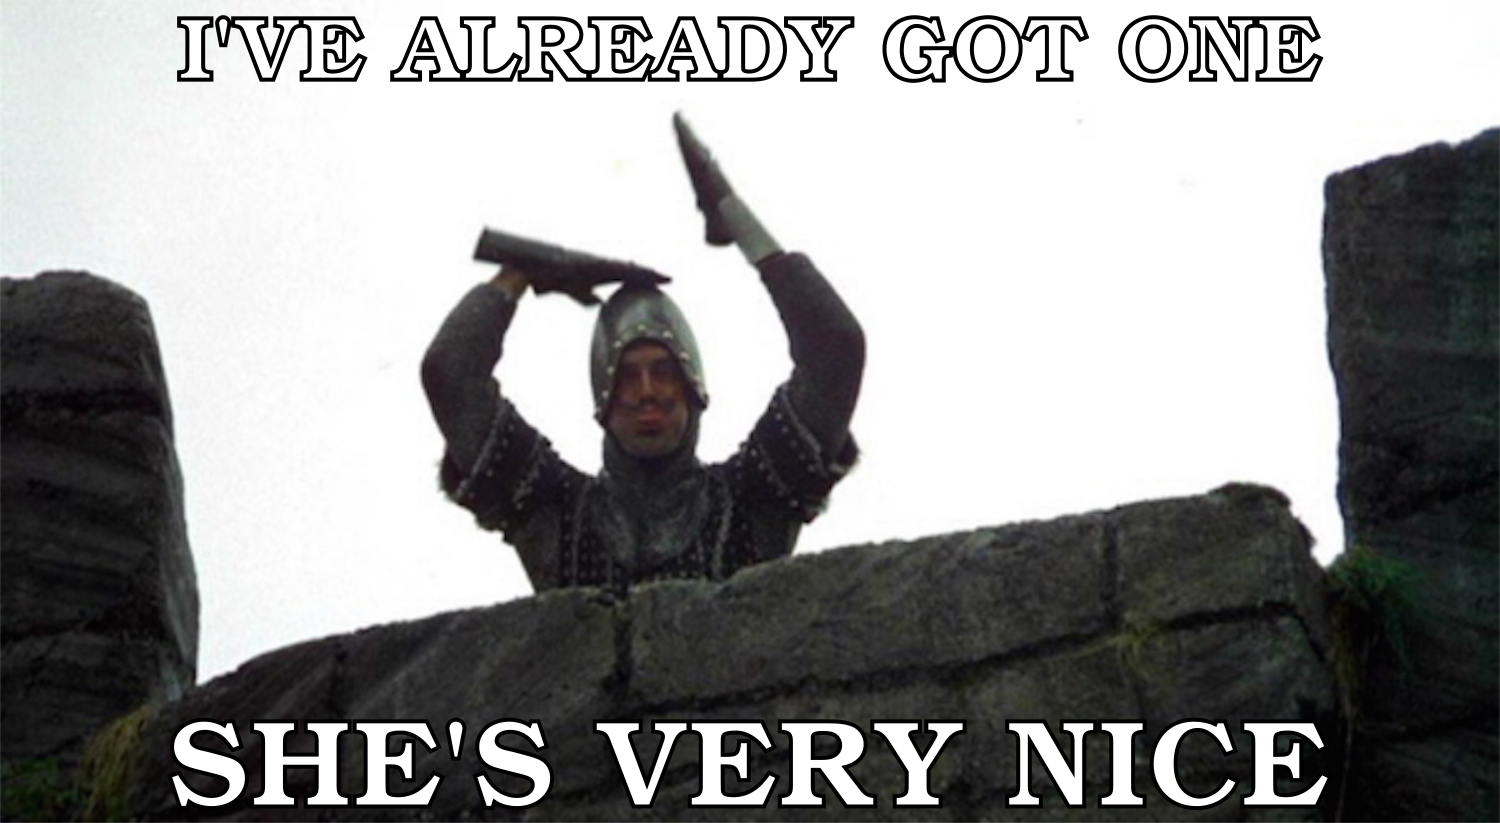 "The obnoxious French knight from _Monty Python and the Holy Grail_, making an insulting gesture, and captioned ""I'VE ALREADY GOT ONE / SHE'S VERY NICE"""